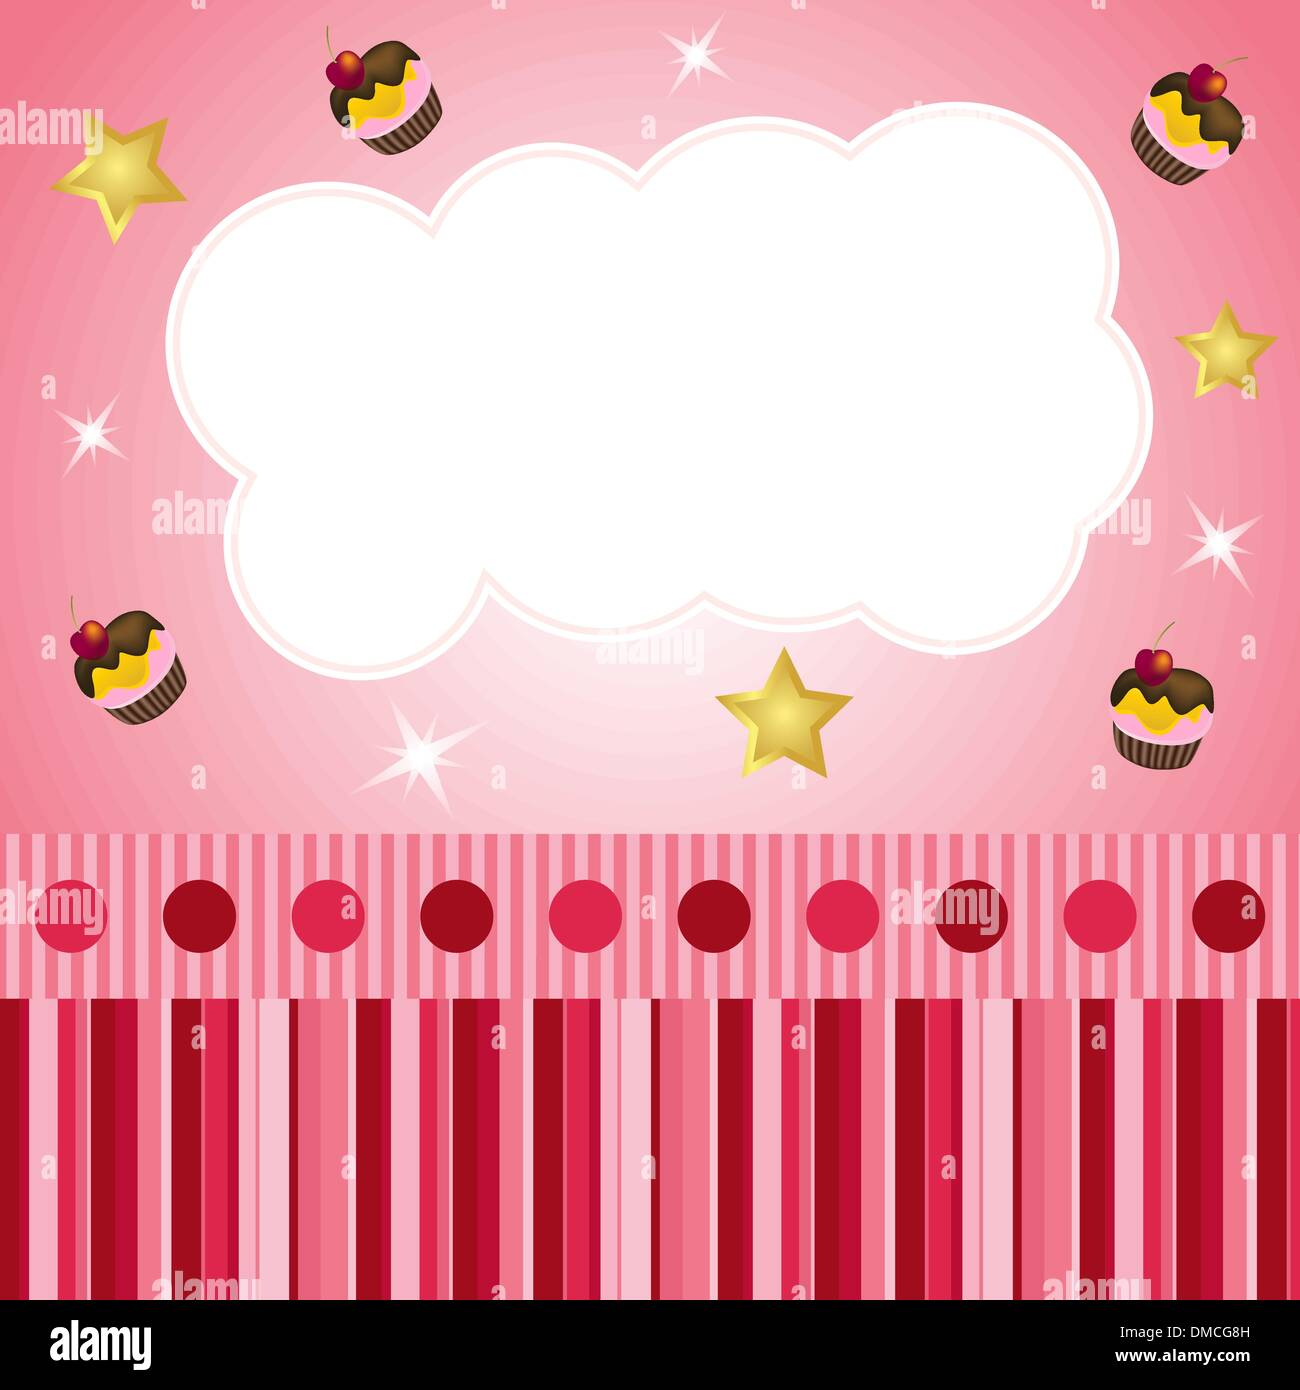 pink scrap background with cloud - Stock Image